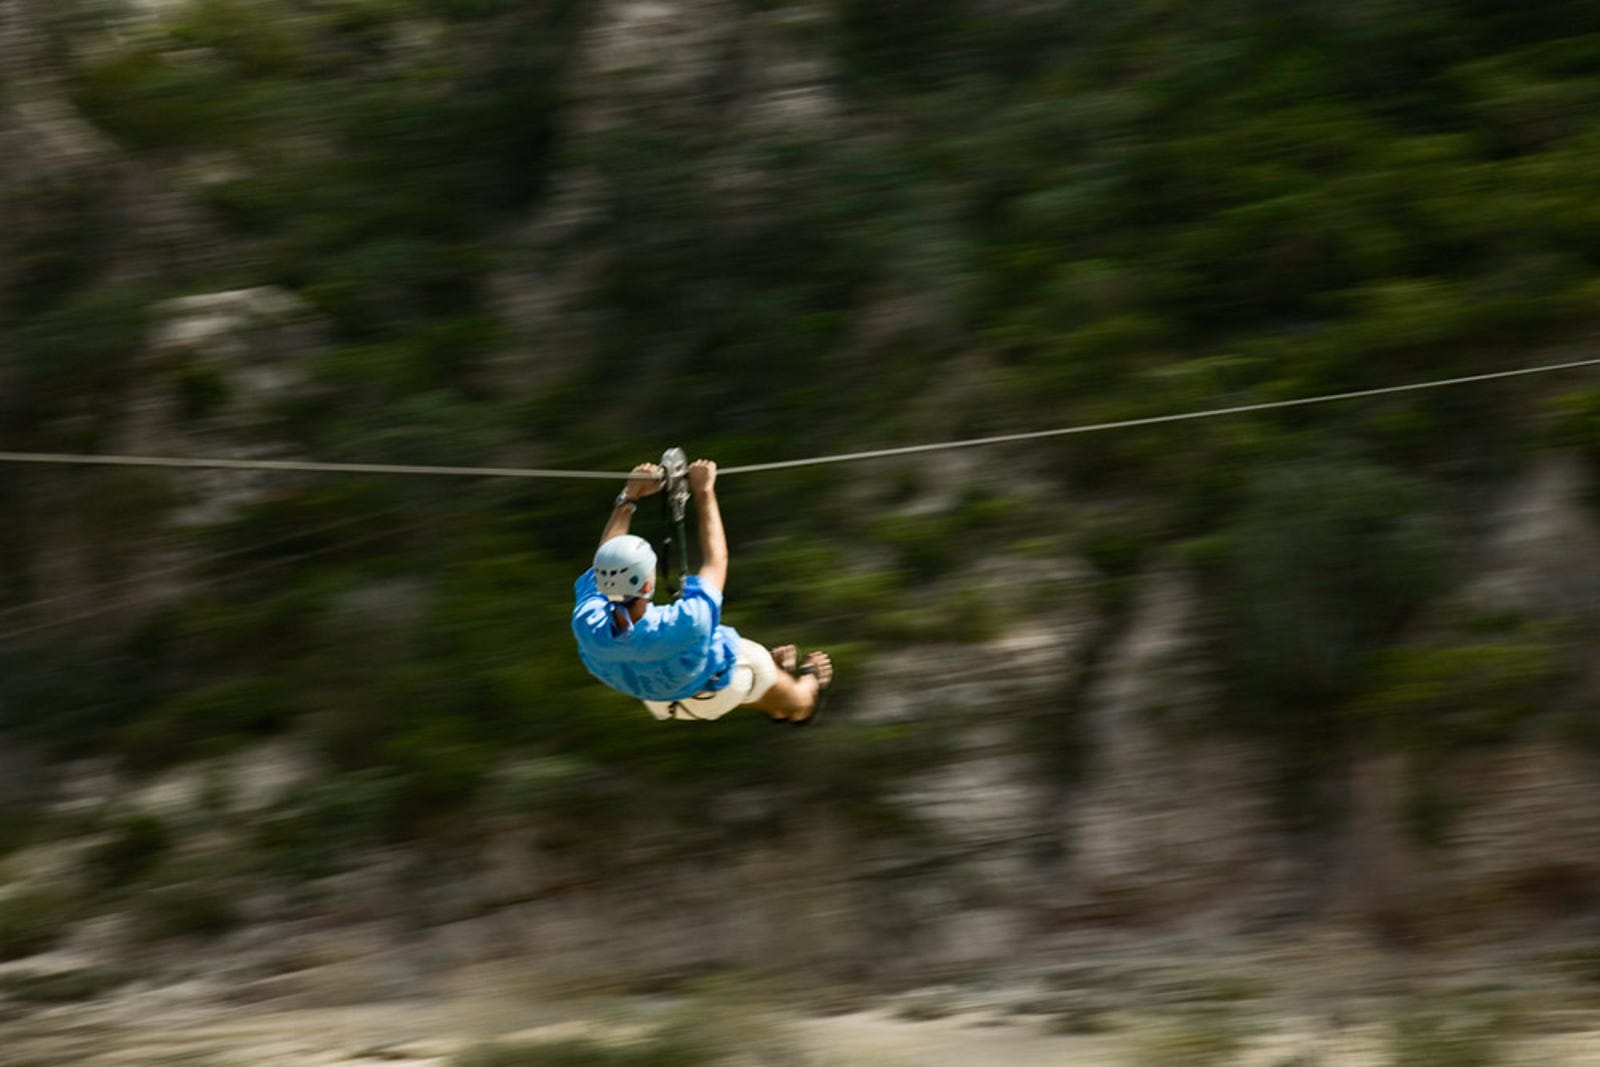 Zip-Lining Day Trip To Somehow Save Marriage